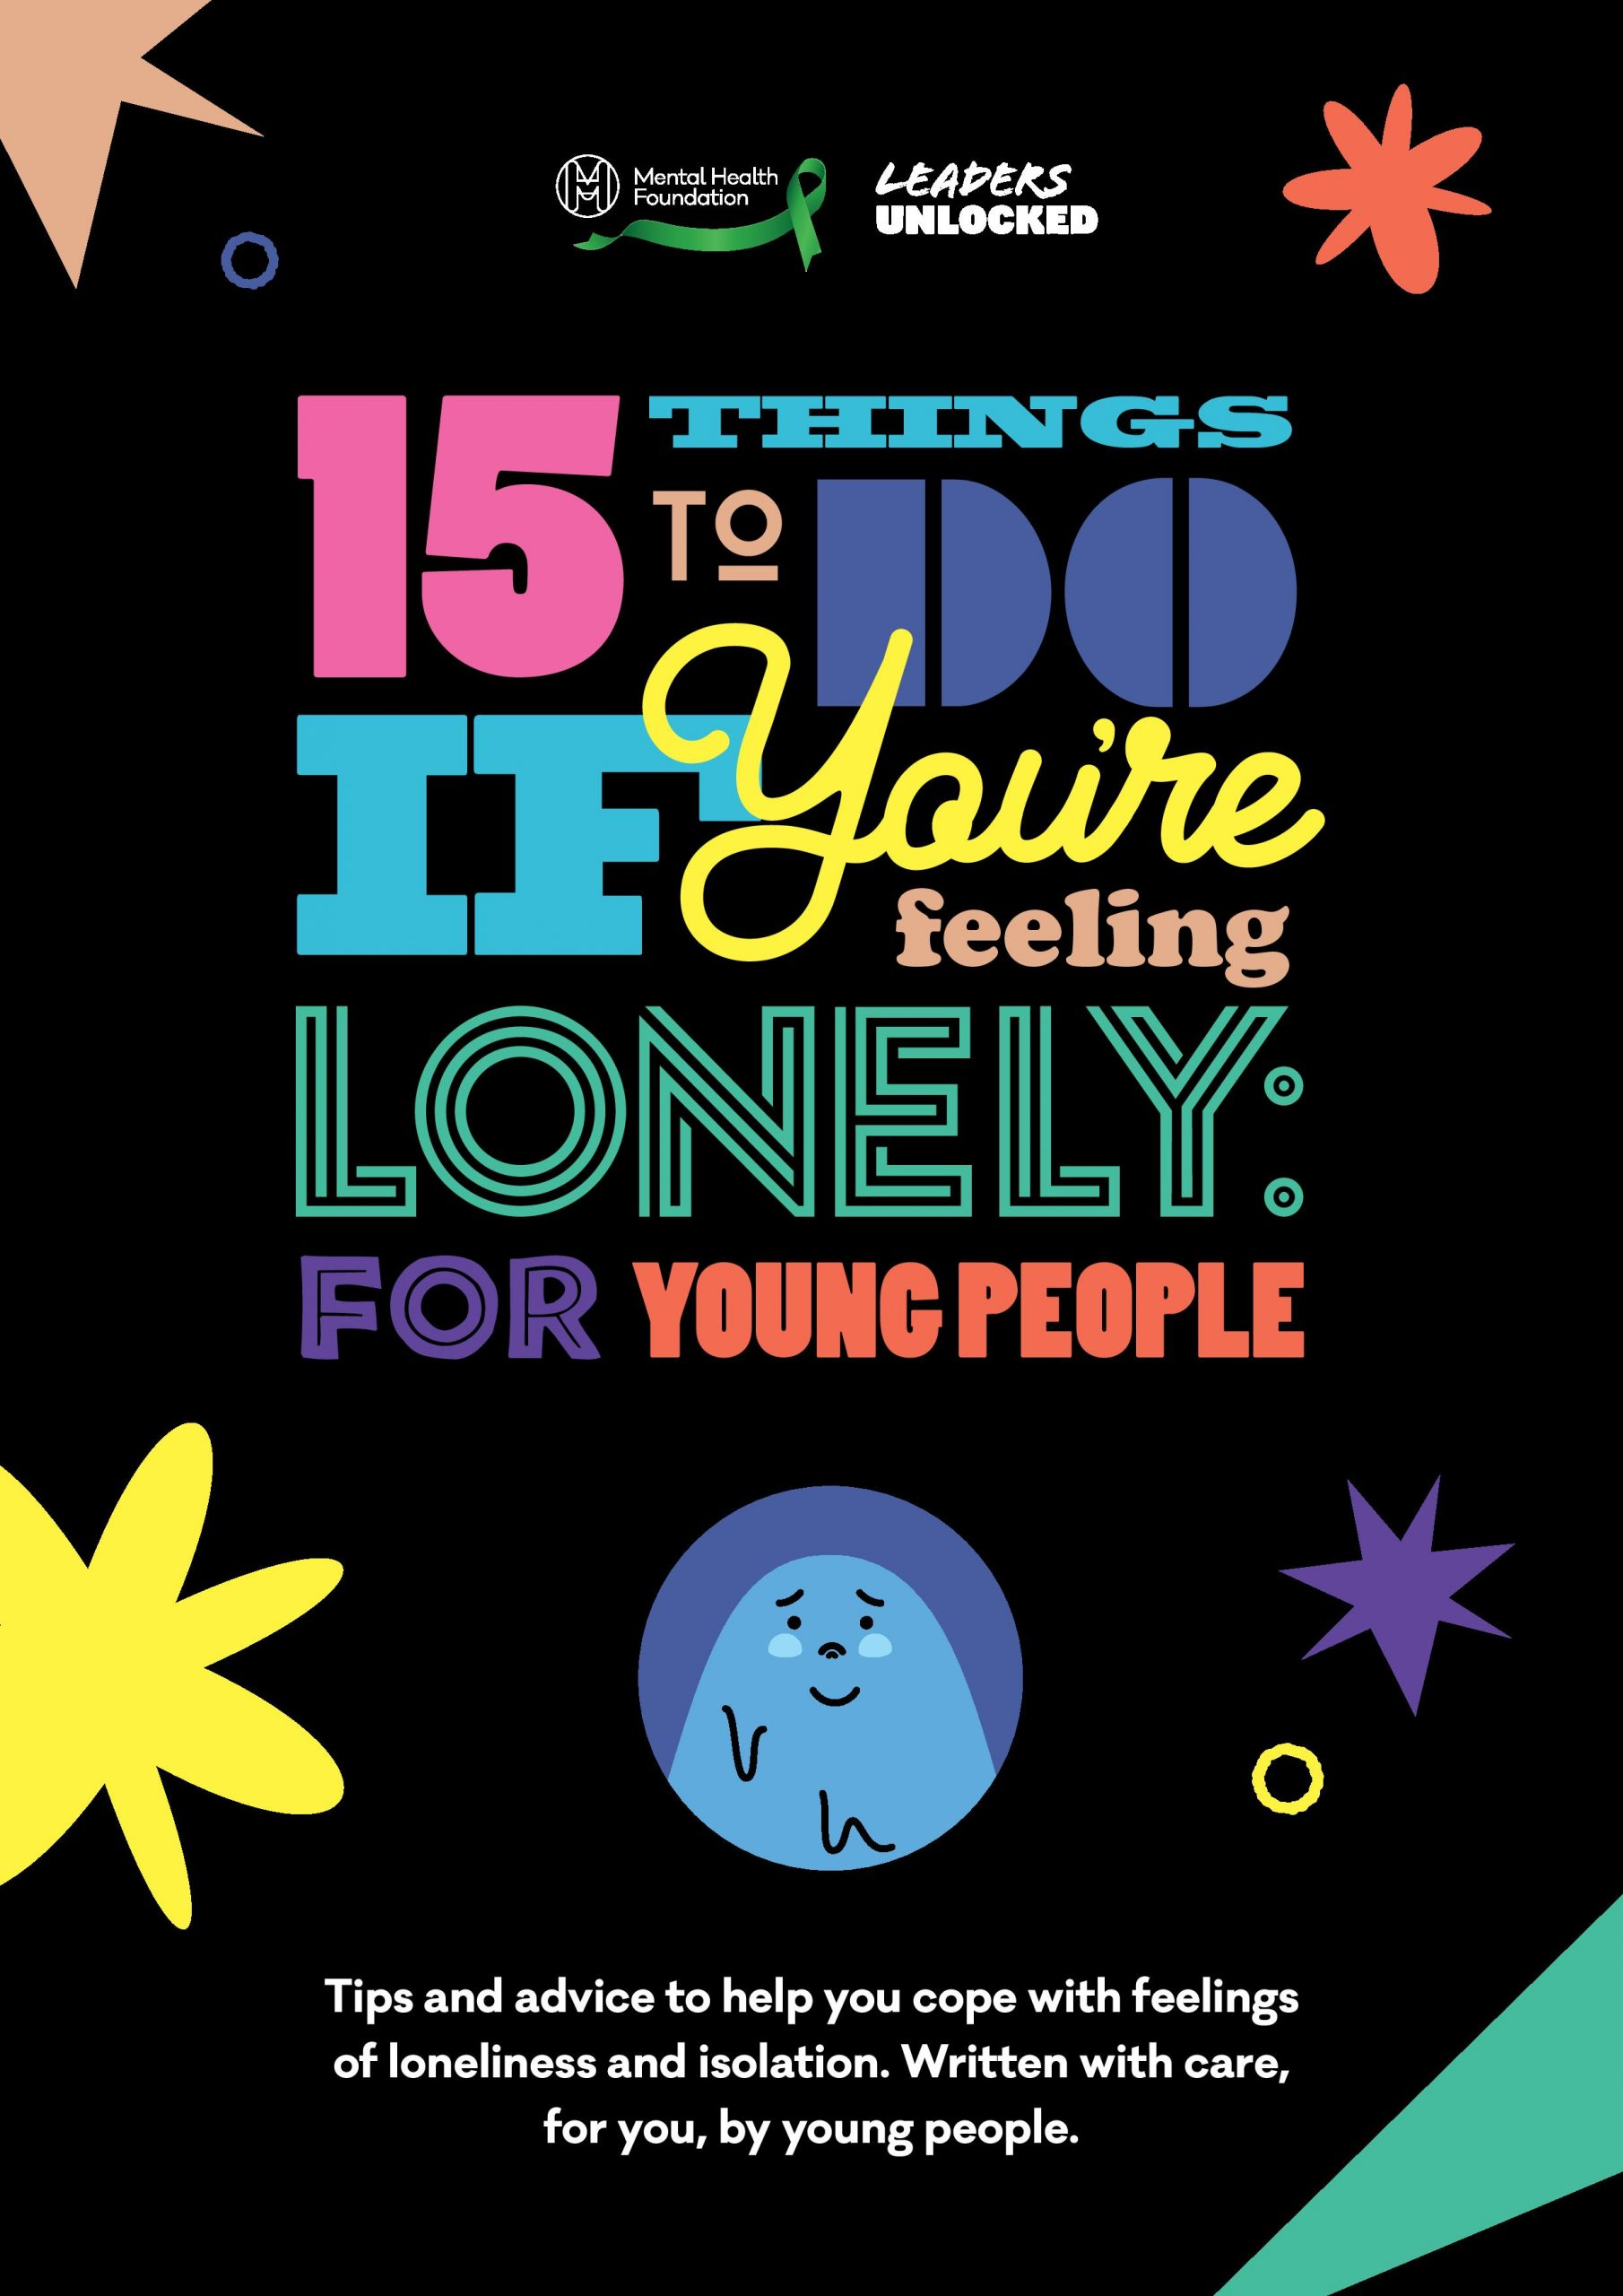 15-loneliness-tips-for-young-people-page-001